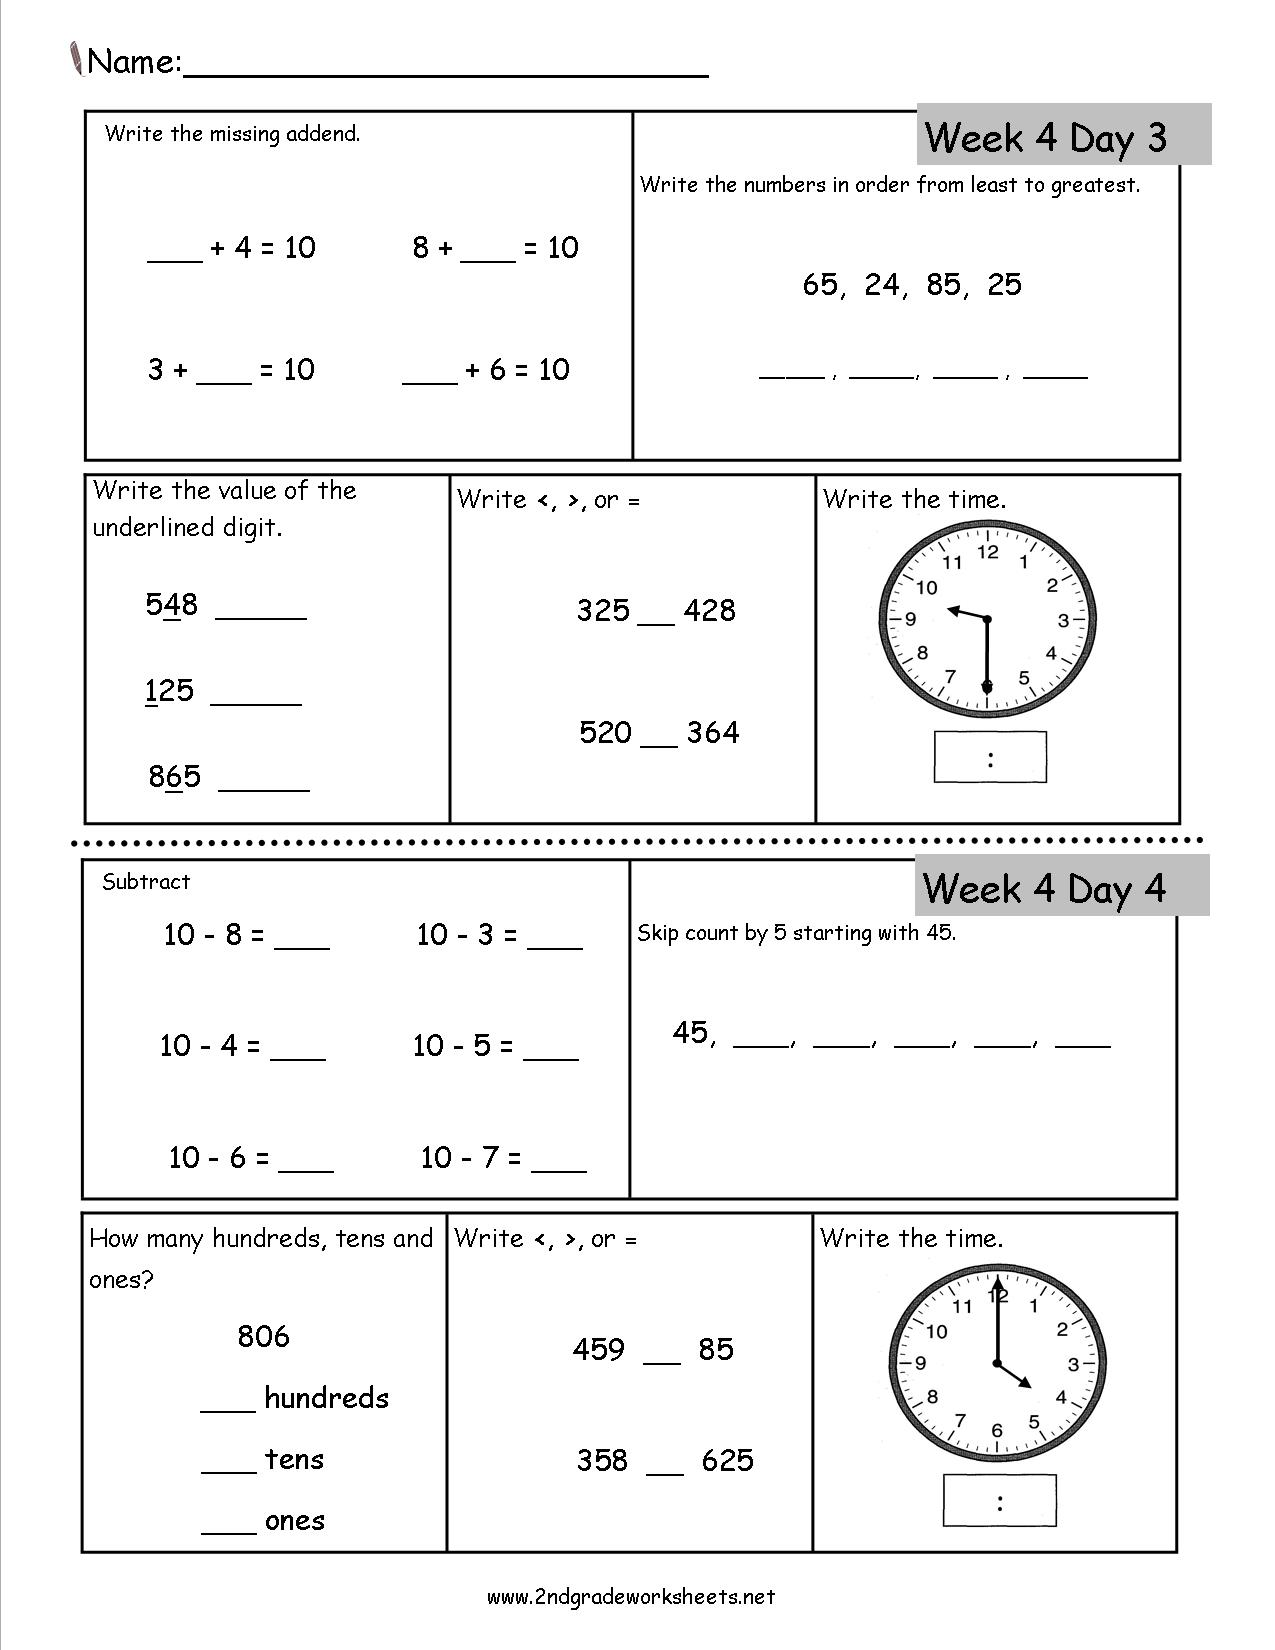 Worksheets Free Common Core Math Worksheets For First Grade free 2nd grade daily math worksheets worksheets